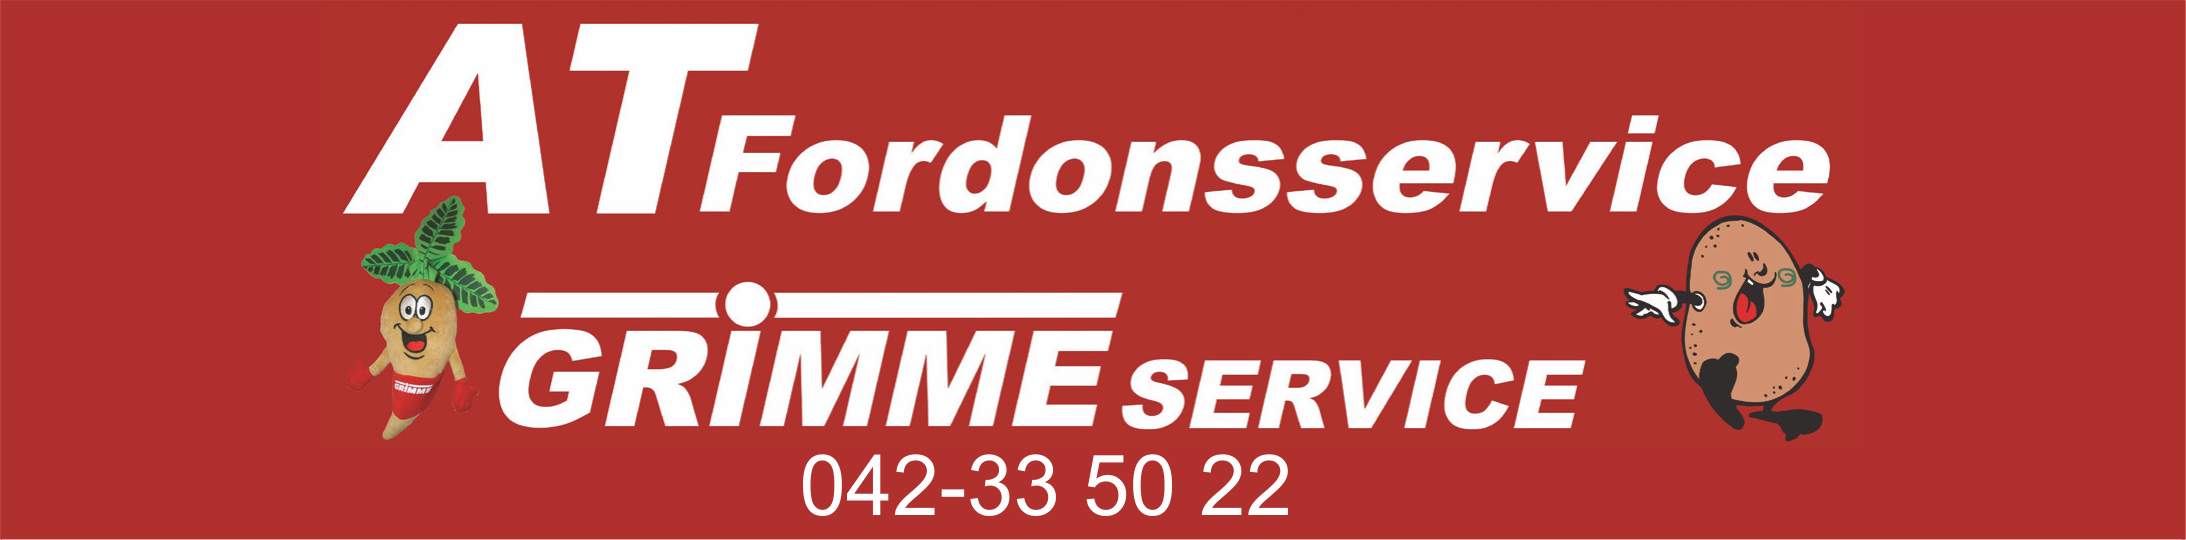 AT Fordonsservice logotype